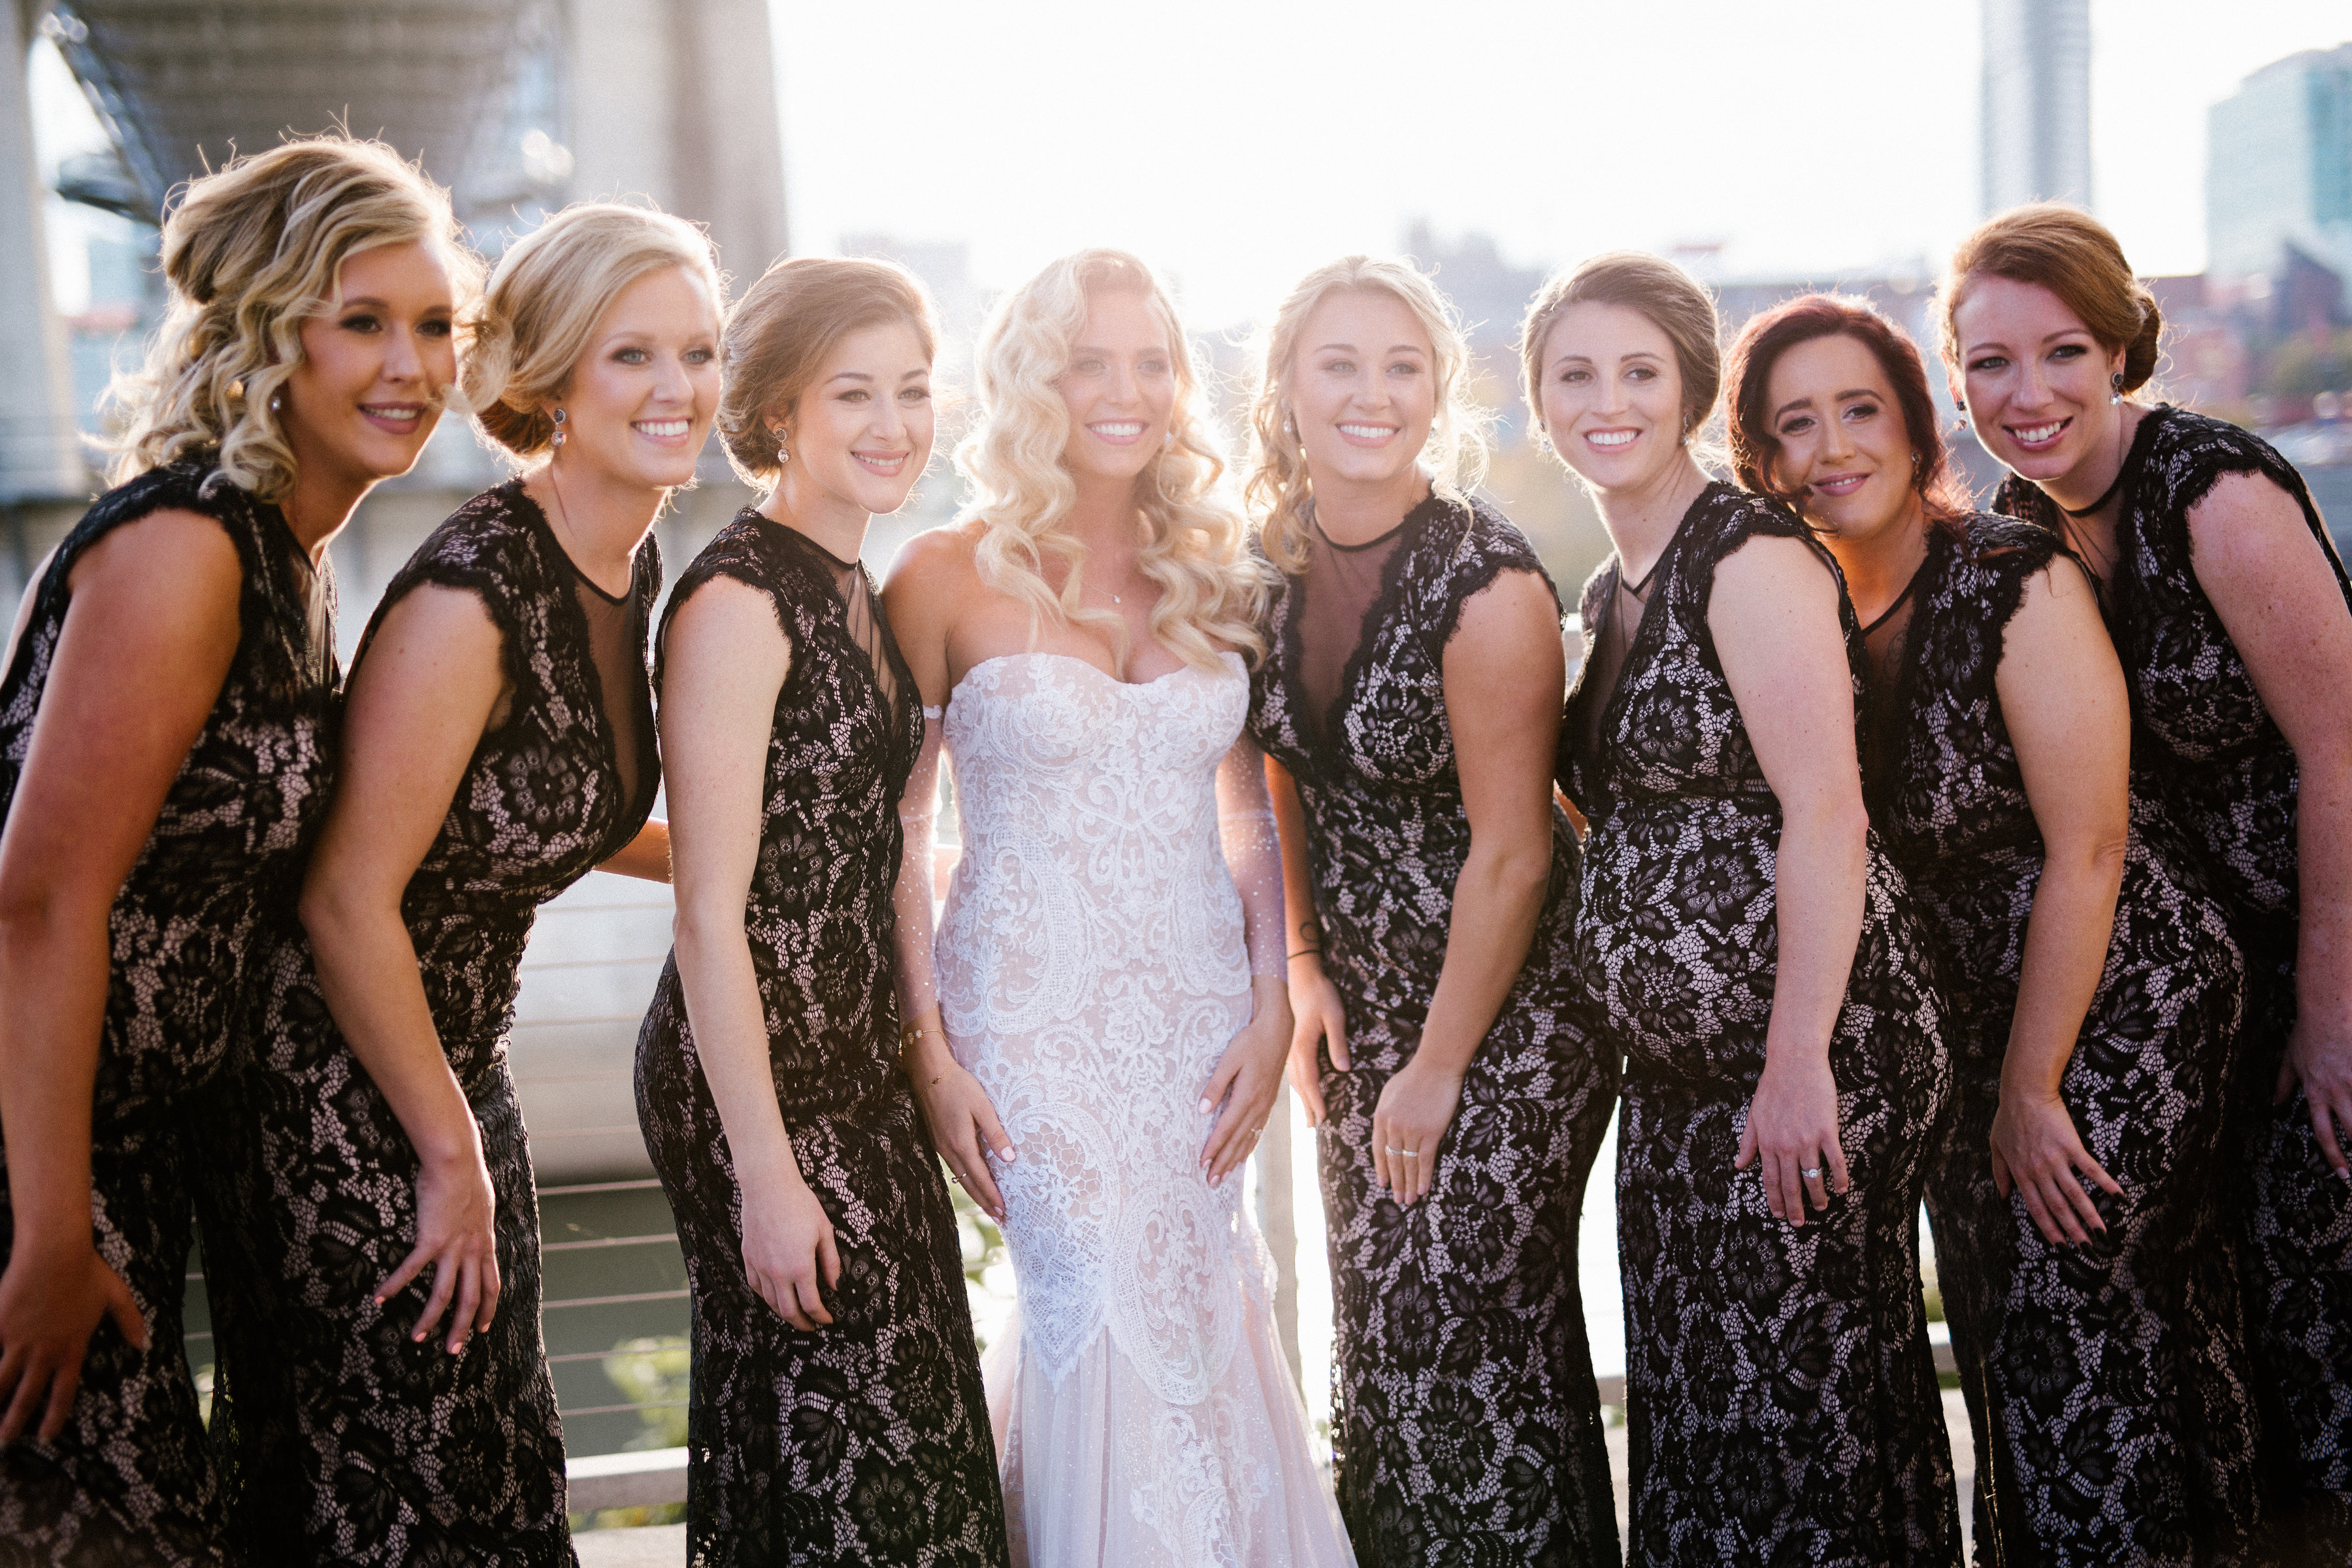 Kaitlin and her bridesmaids